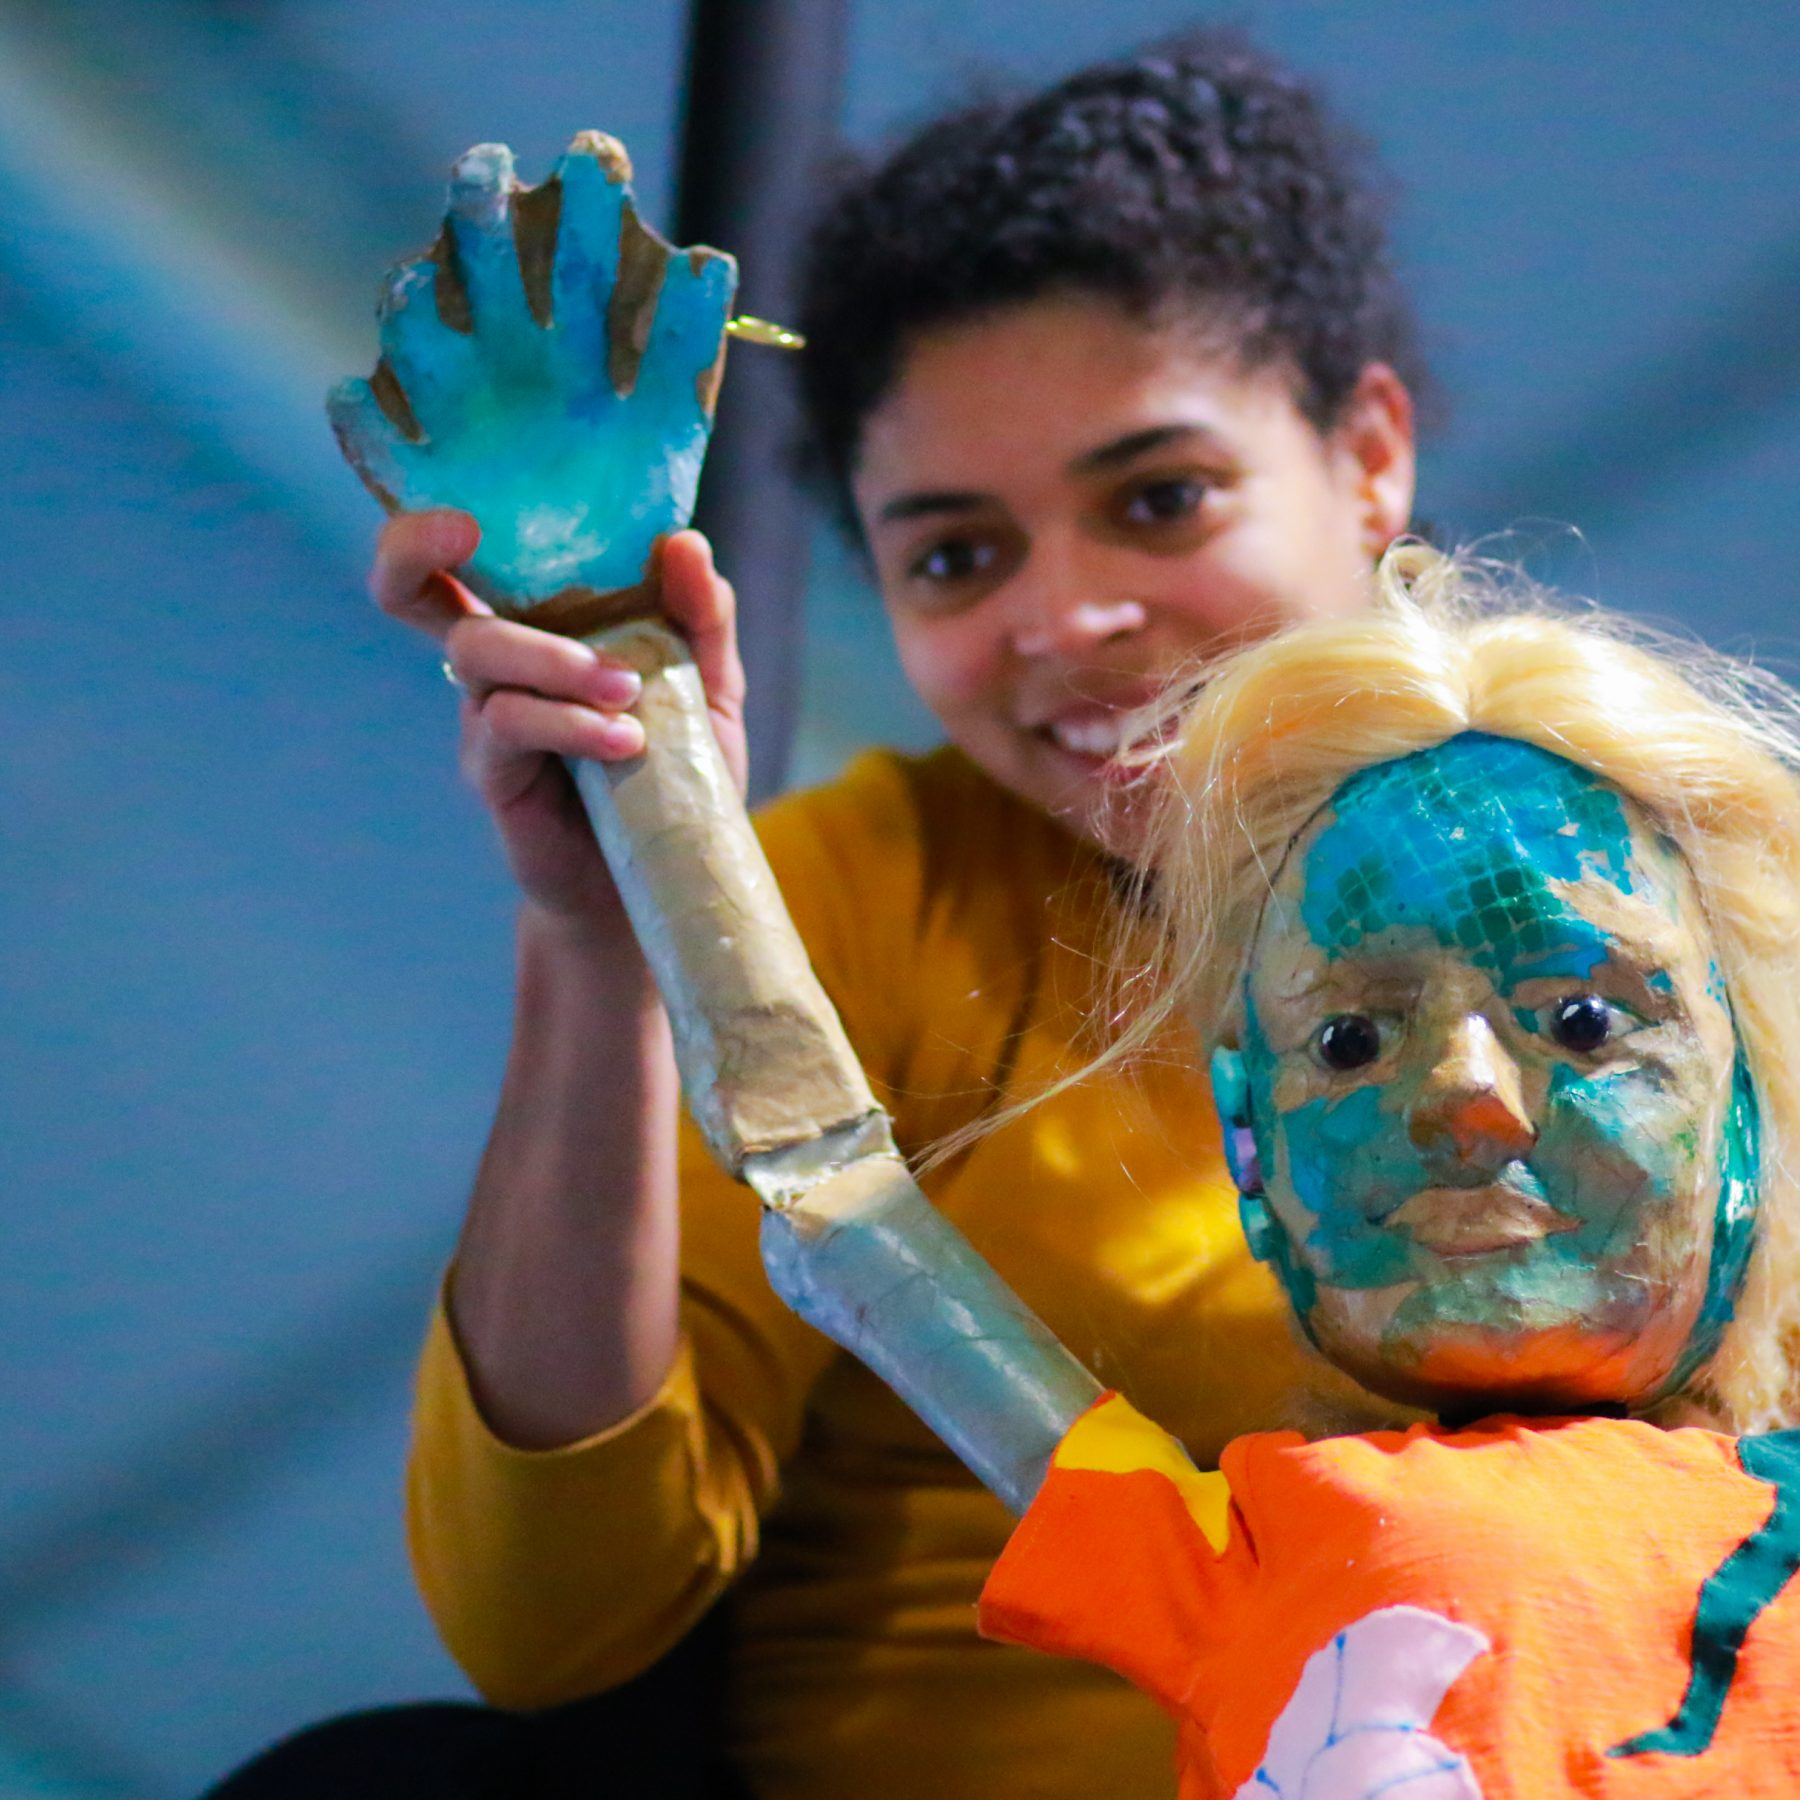 A young mixed-race woman is smiling and holding up a puppet of a girl with blond hair, an orange top and fish-like turquoise scales of her face.